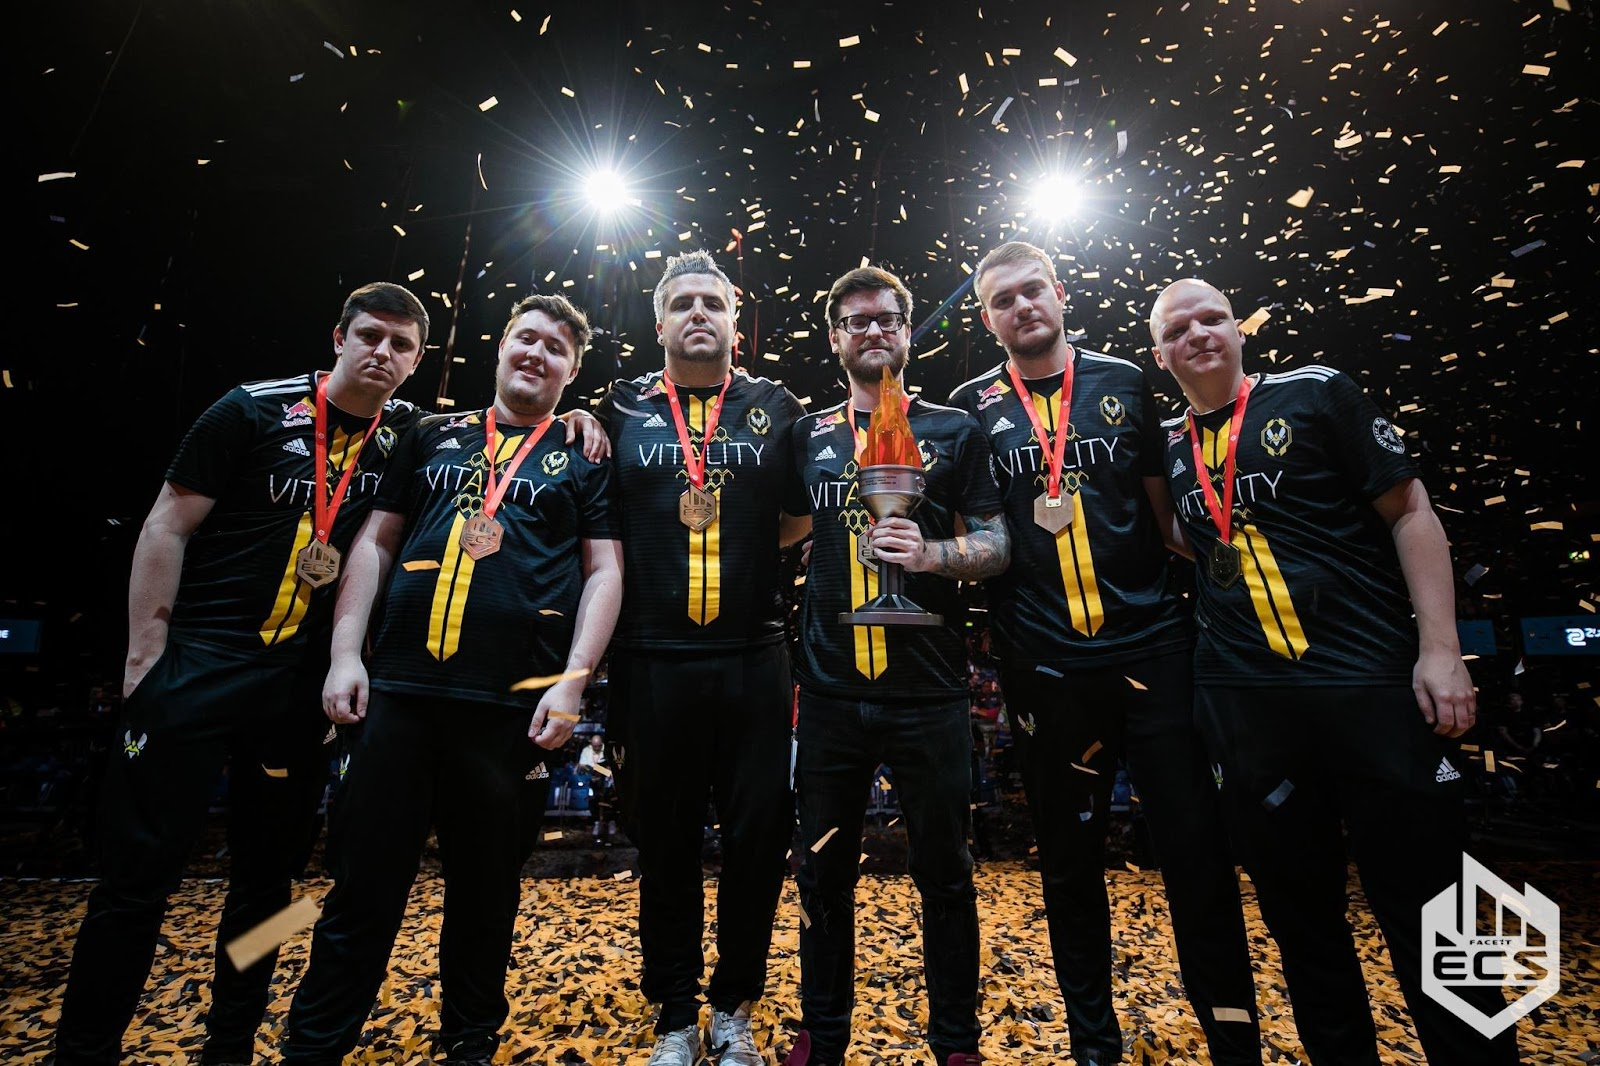 The-top-seven-CS-GO-squads-of-2019-ranks